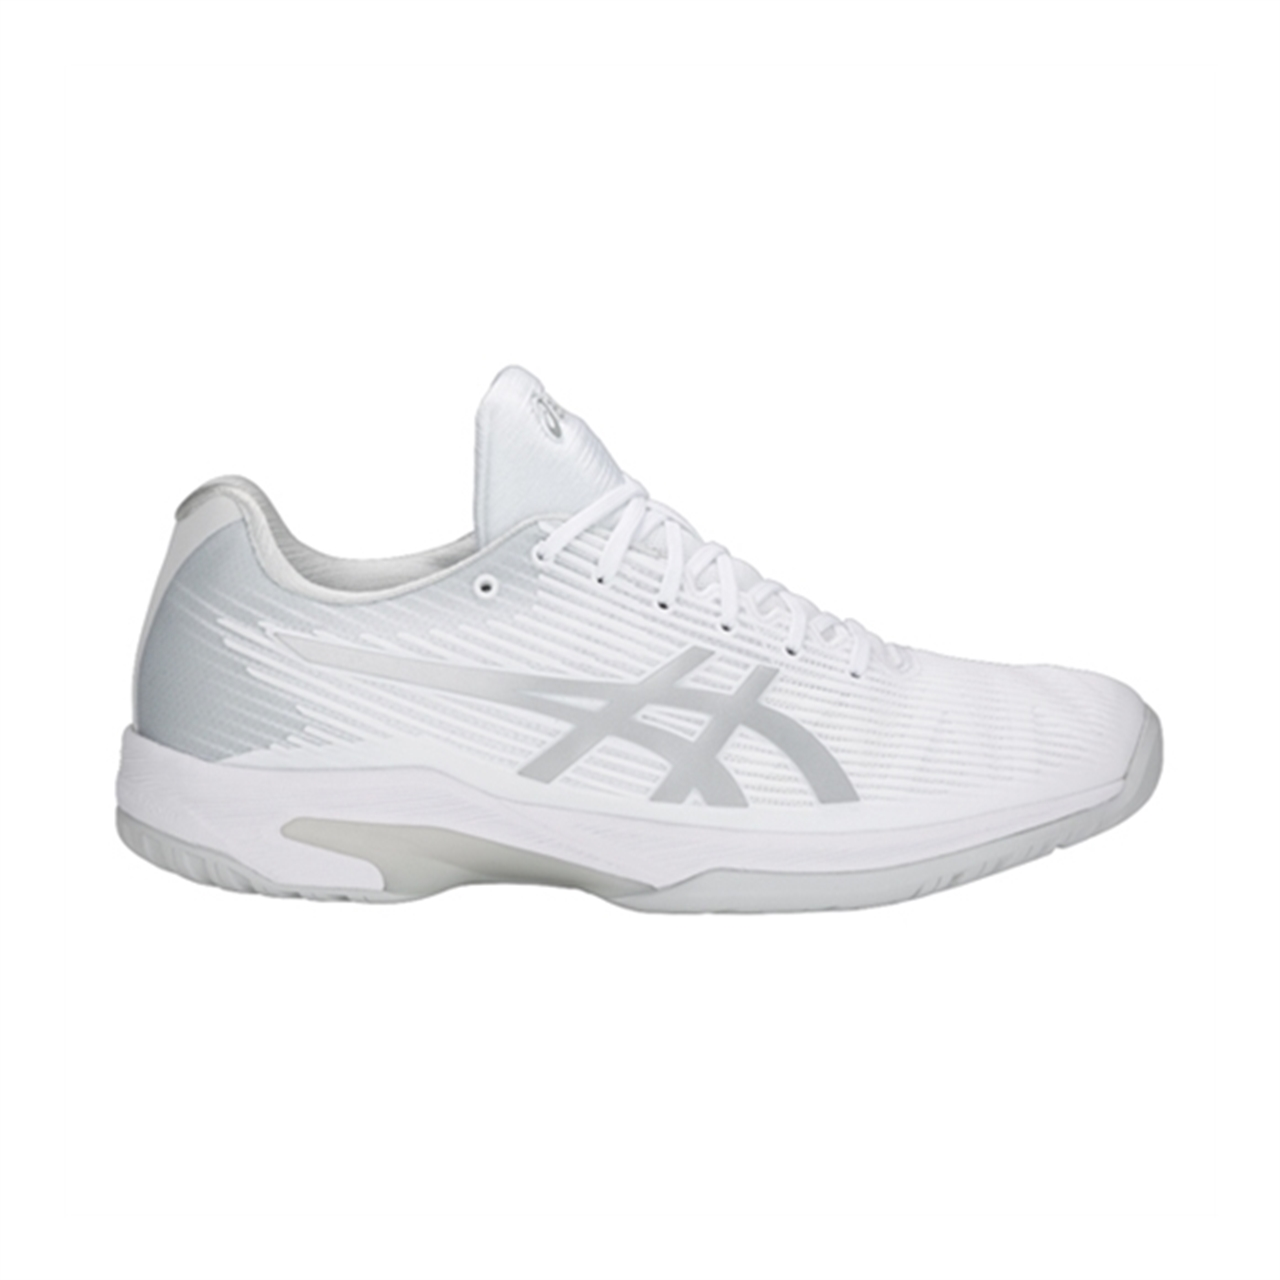 New Asics Court FF 2 | Talk Tennis